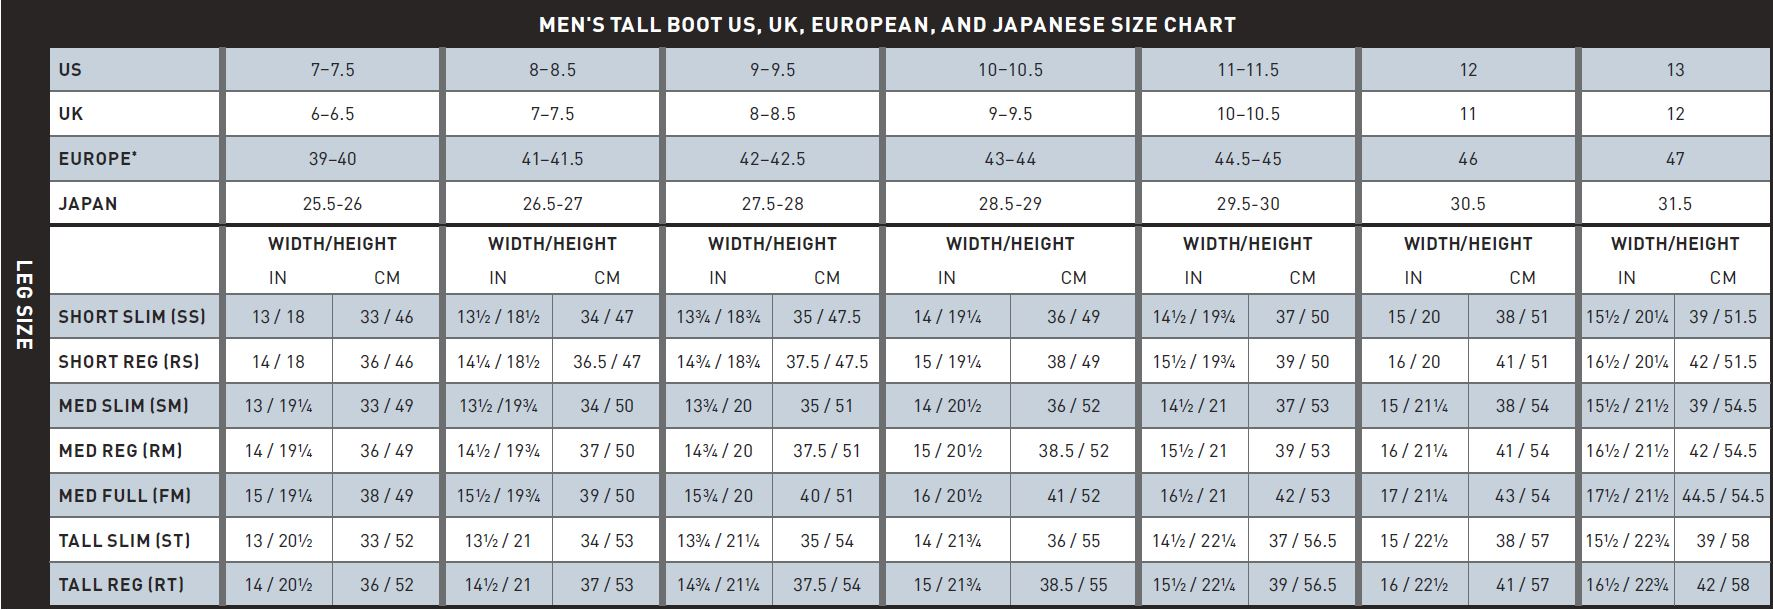 International size chart for mens clothing